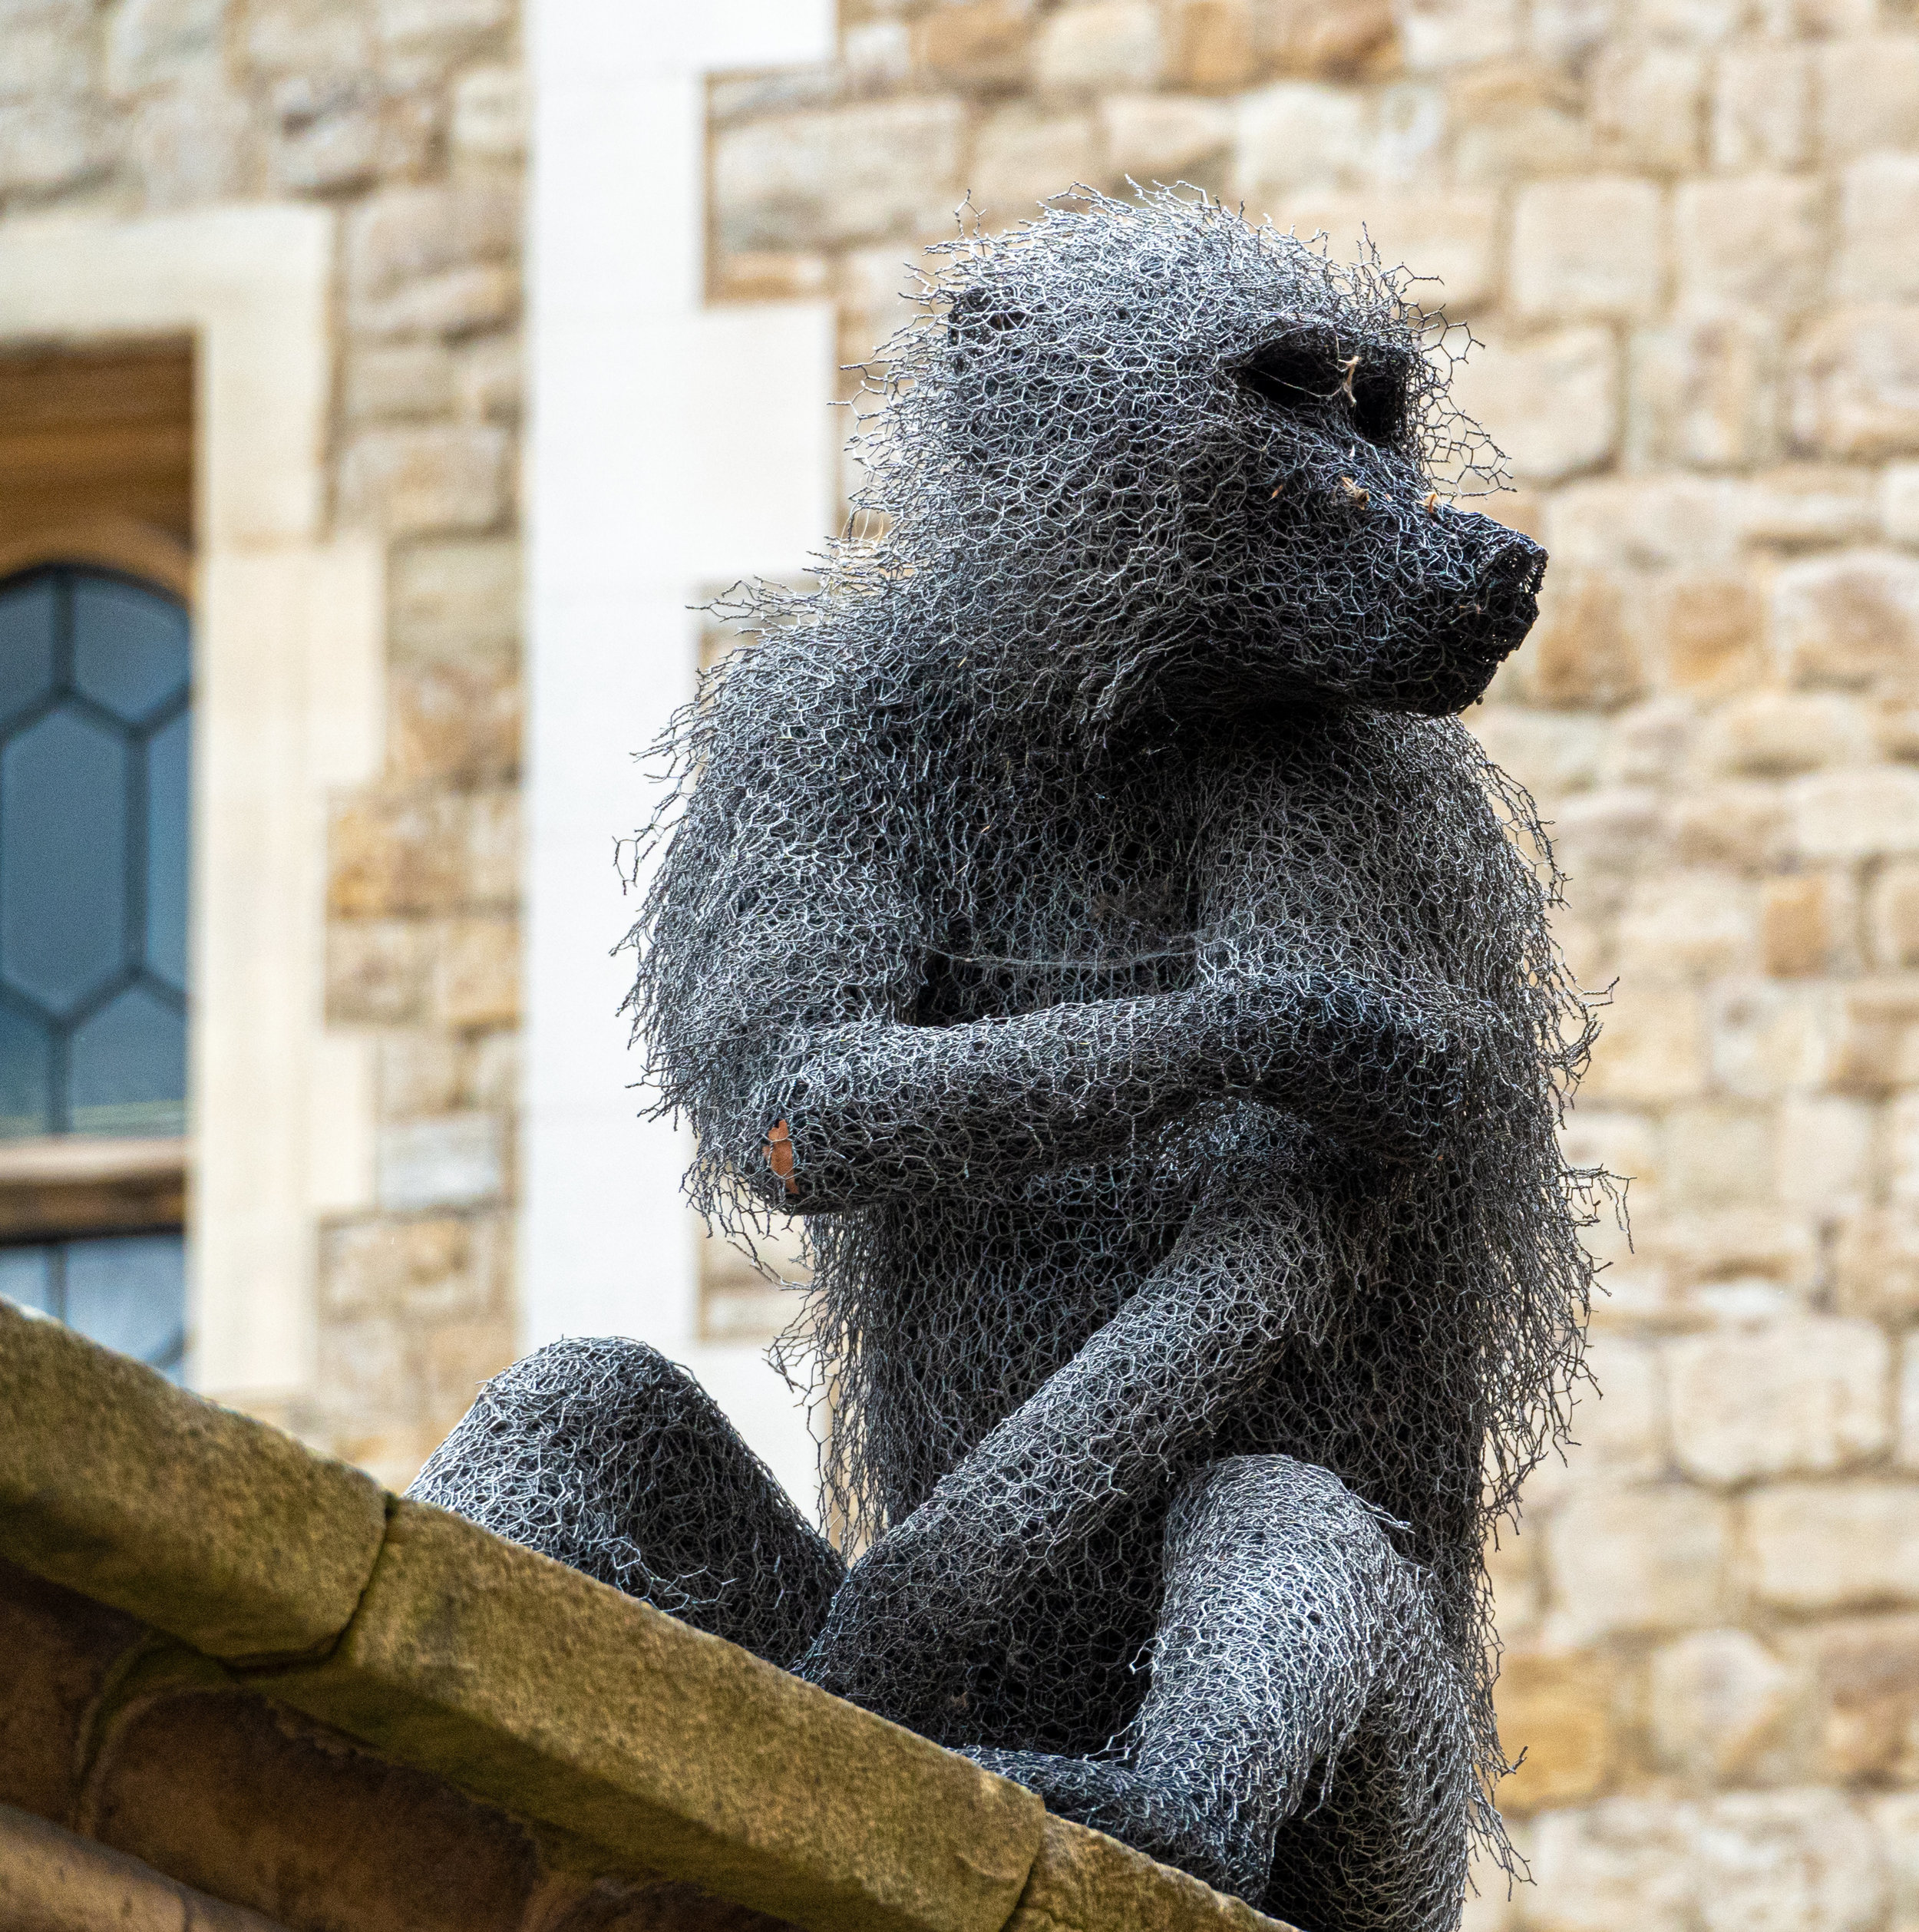 Apparently wild animals roamed freely on the castle grounds, along with the ravens. They've used life-sized wire sculptures like this one to cleverly illustrate this.